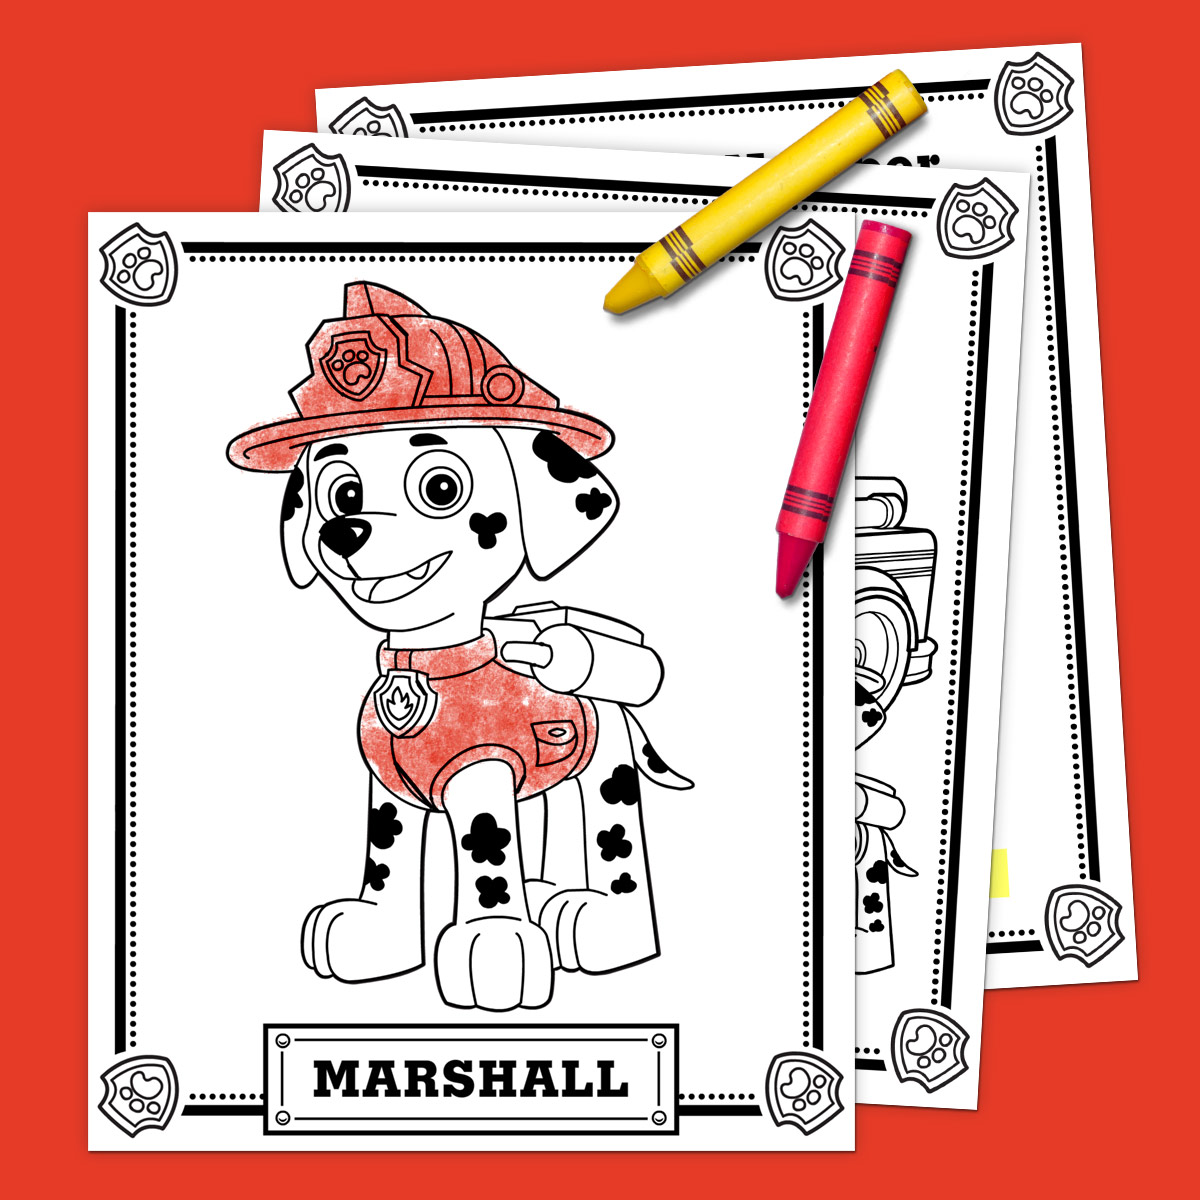 Paw patrol colouring pages free - Savesave To Pinterest Marshall Pack